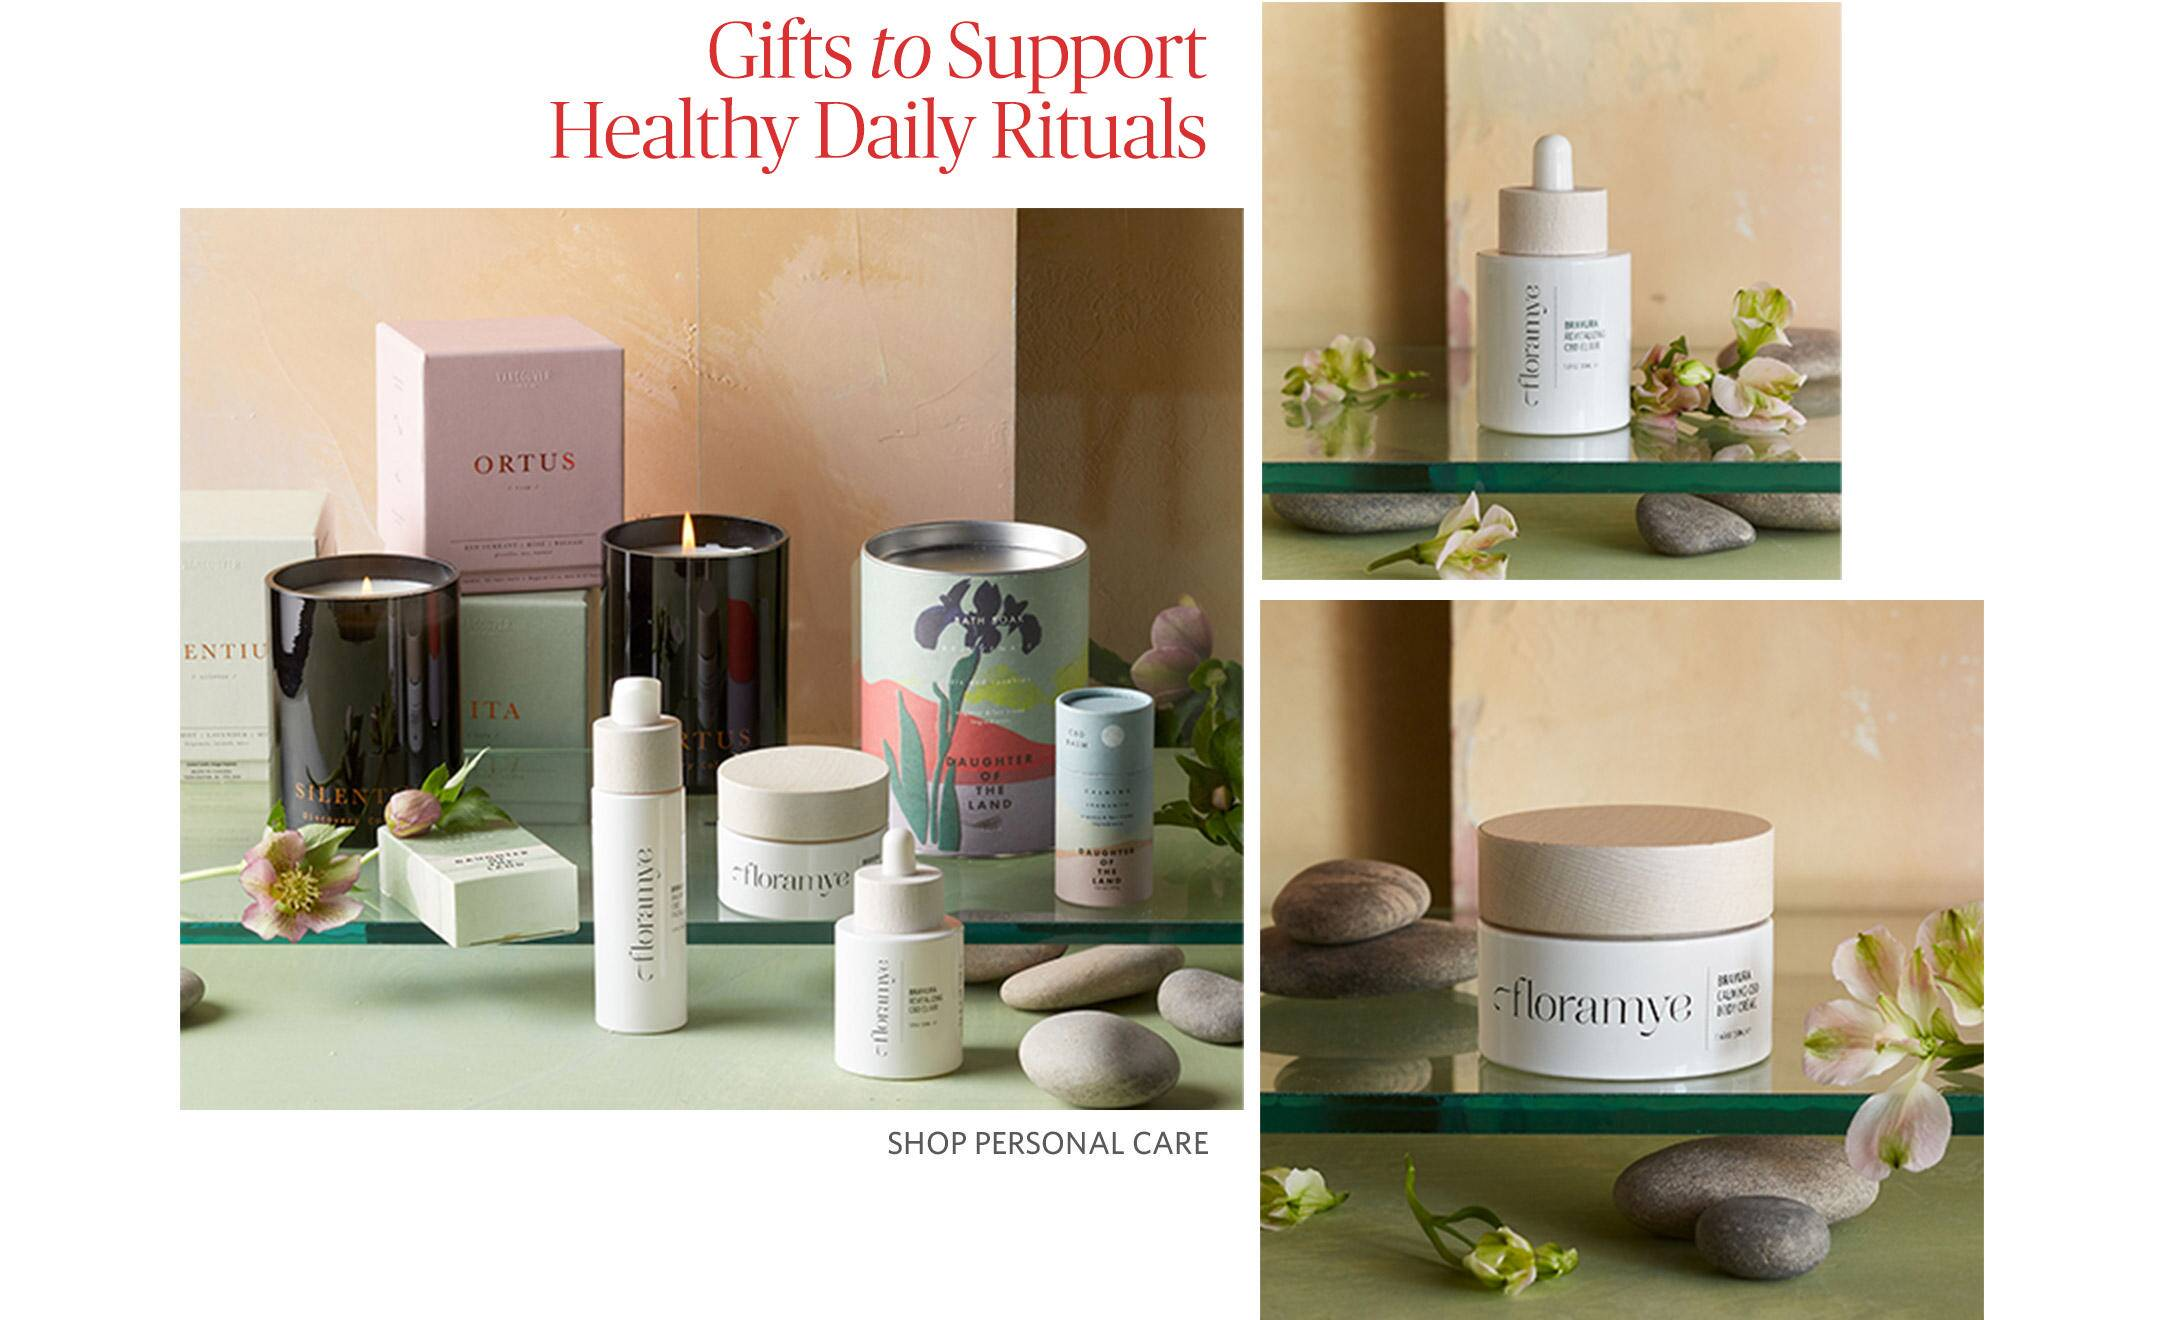 Gifts to Support Daily Rituals